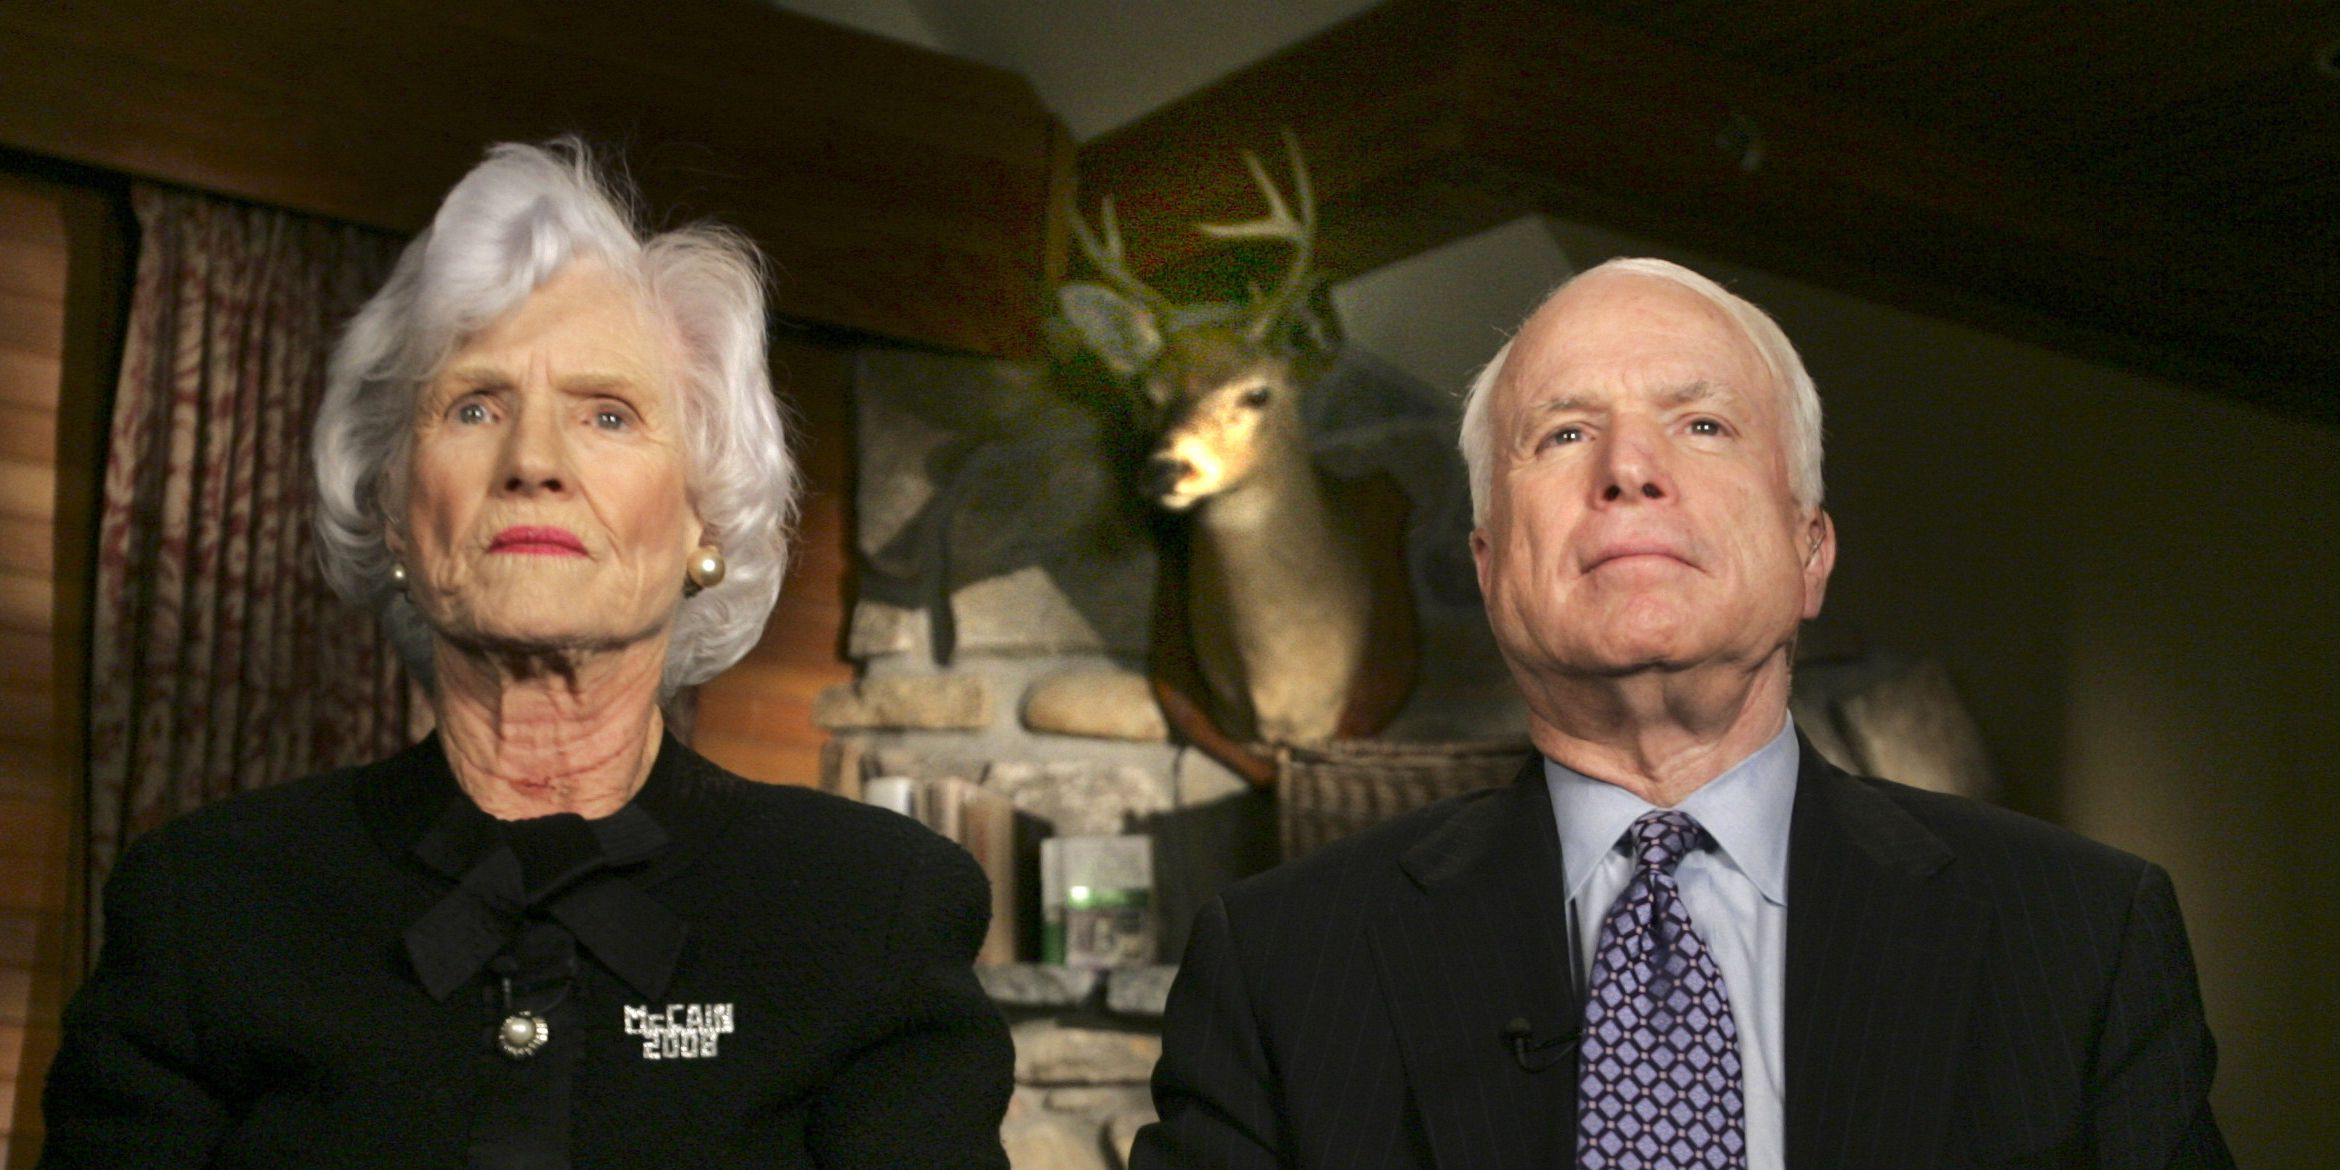 Roberta McCain, John McCain's mother, dies at 108